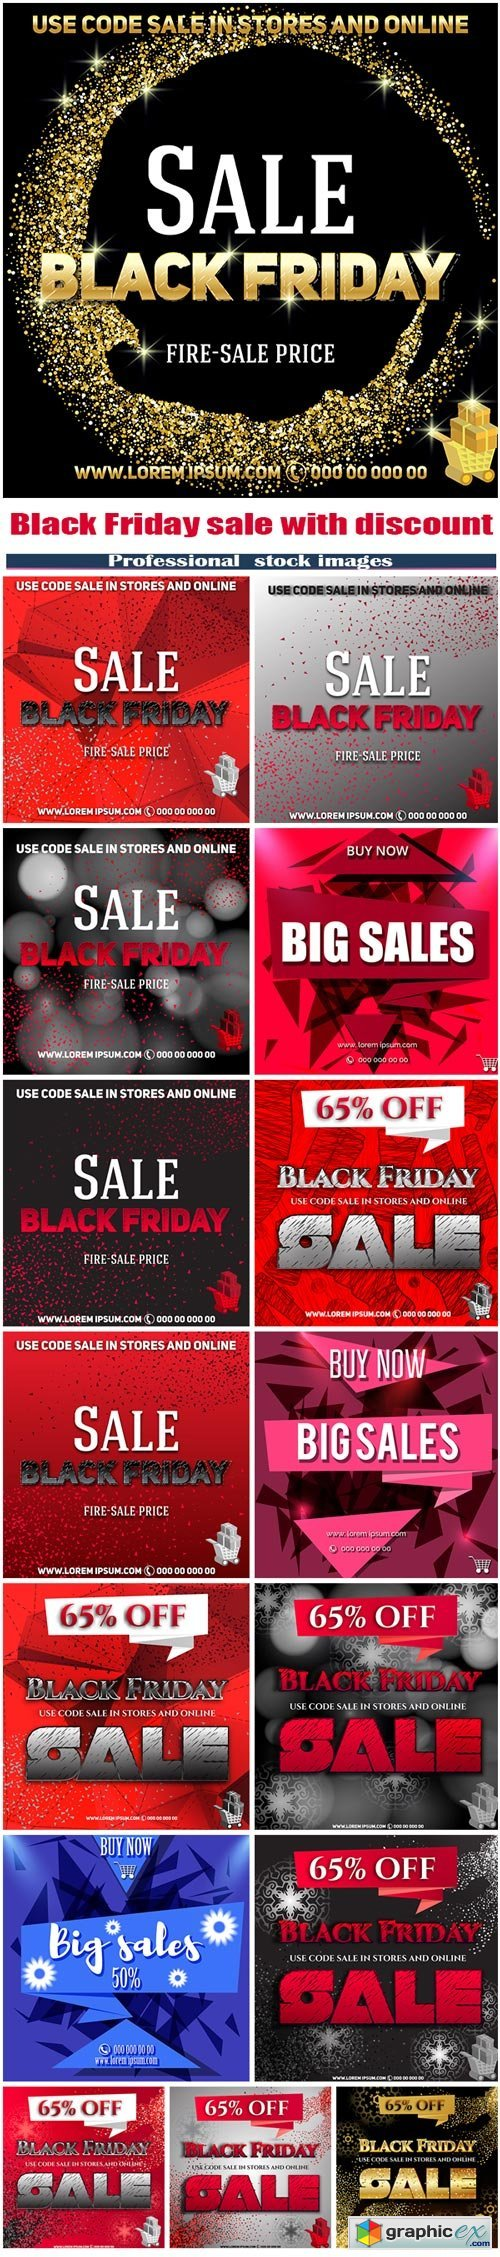 Black Friday sale with discount